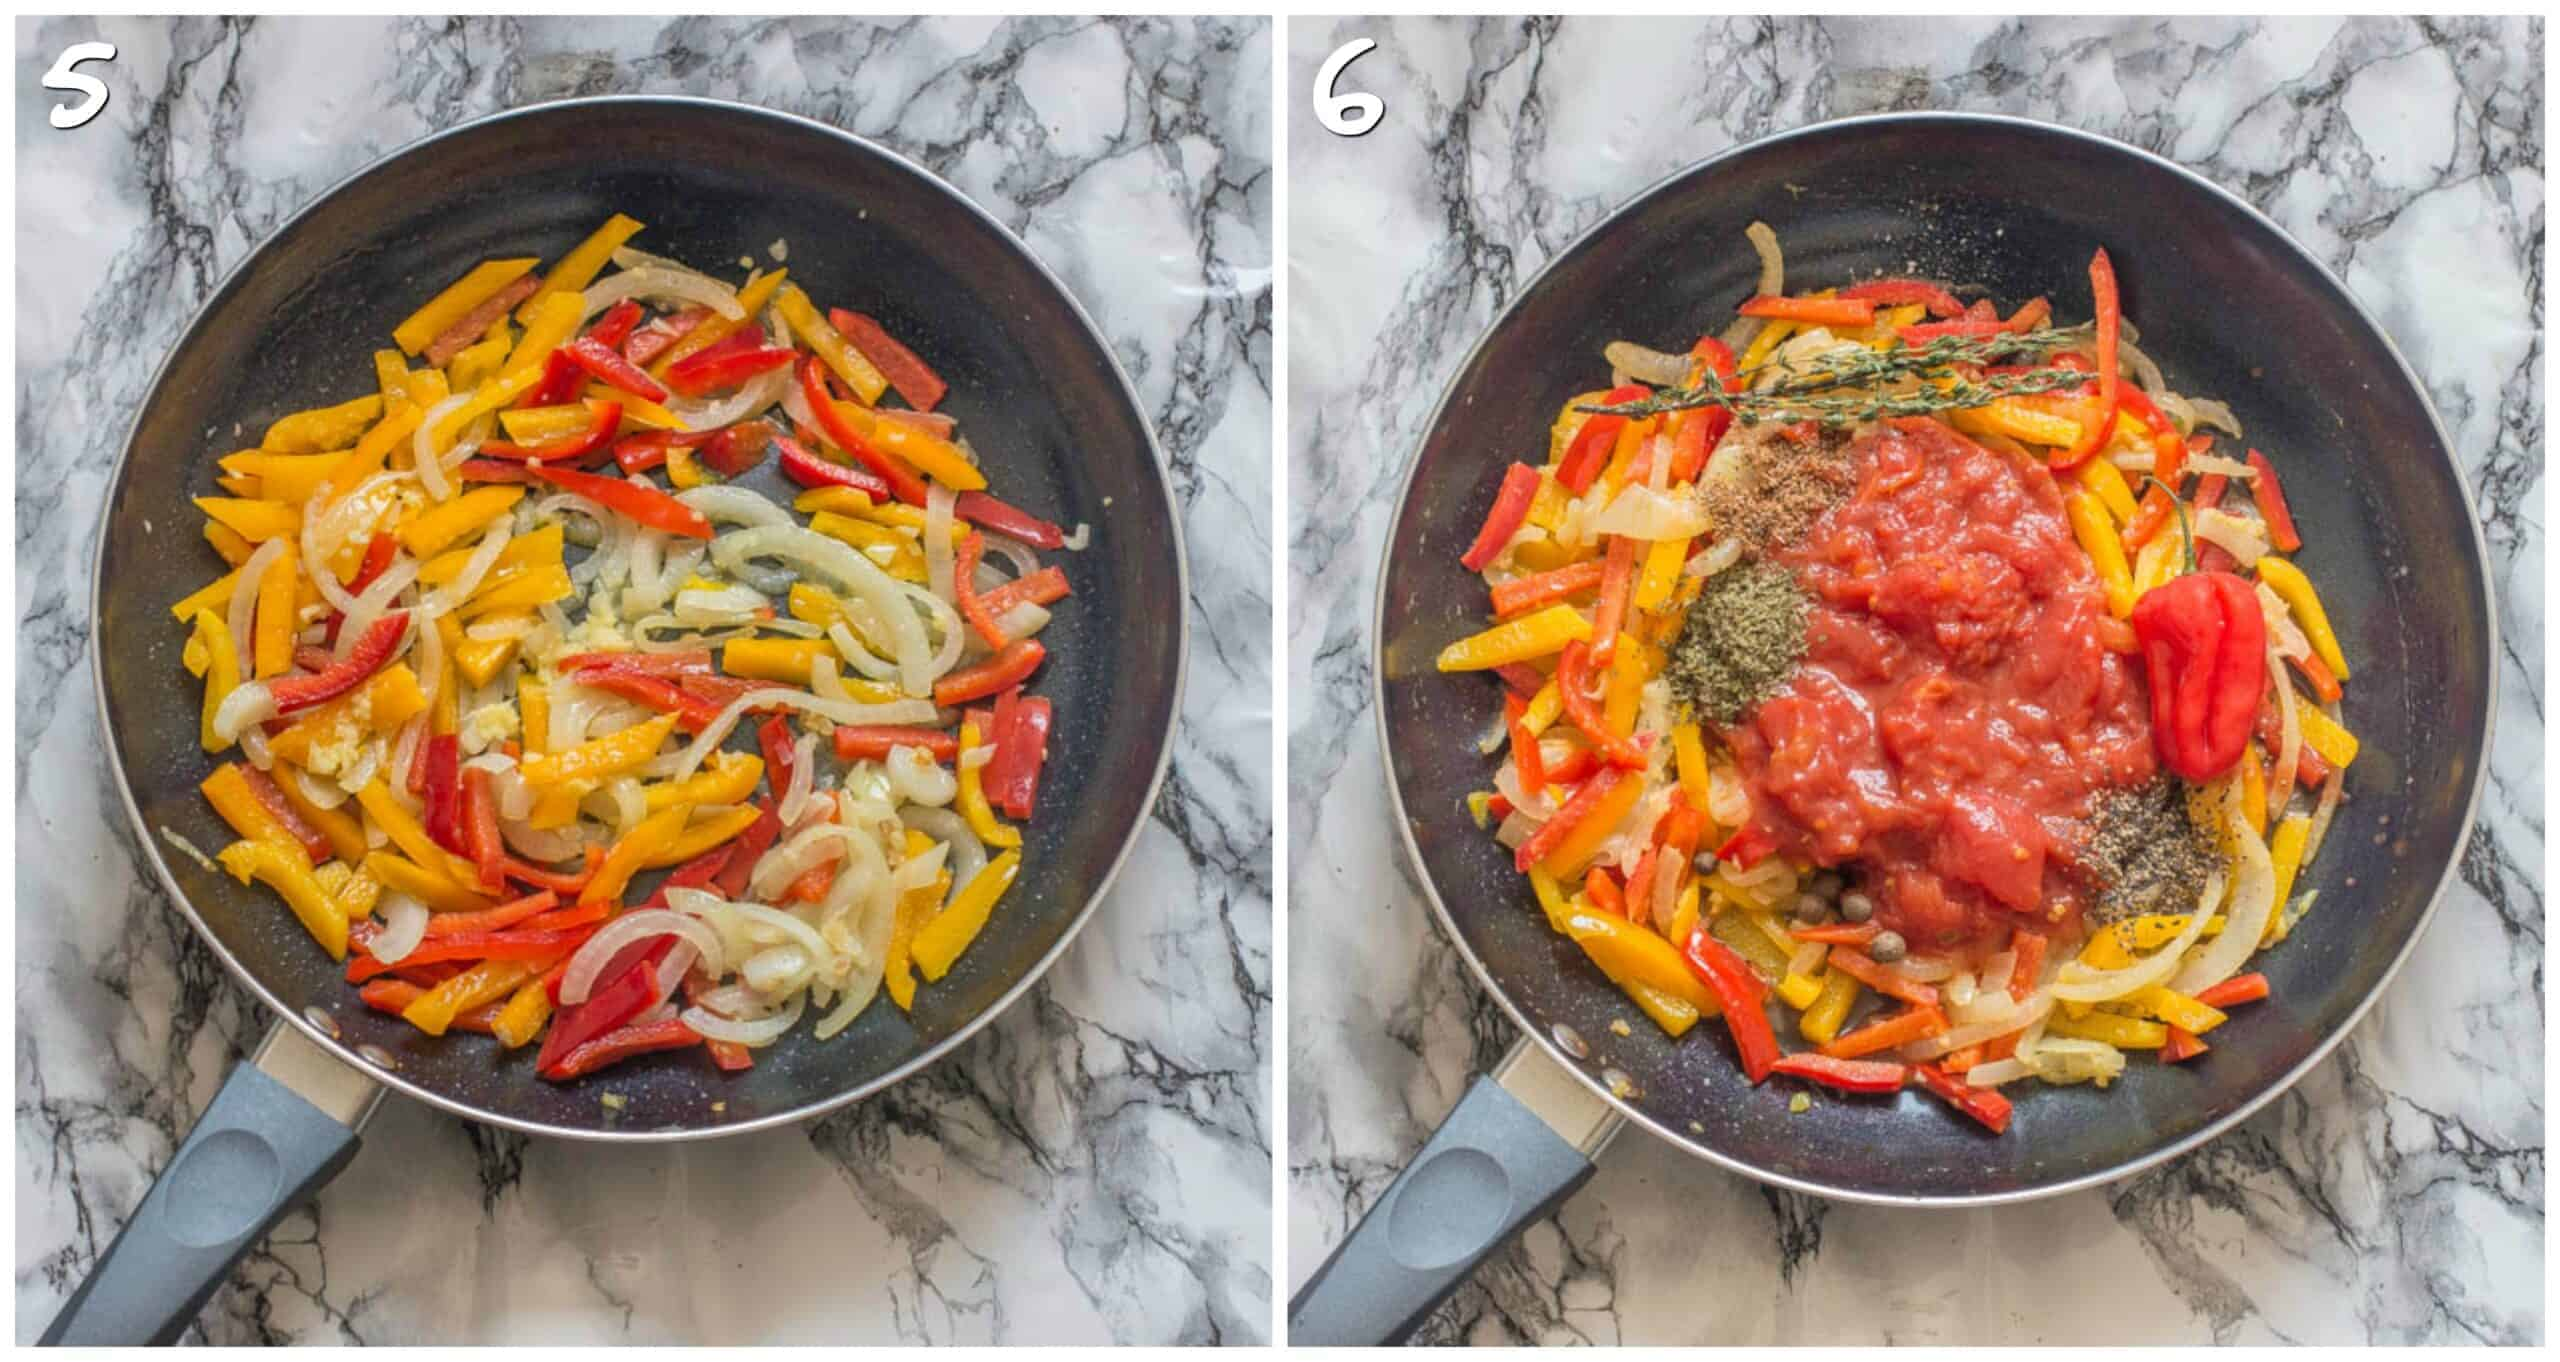 steps 5-6 adding bell peppers and tomato, thyme, scotch bonnet